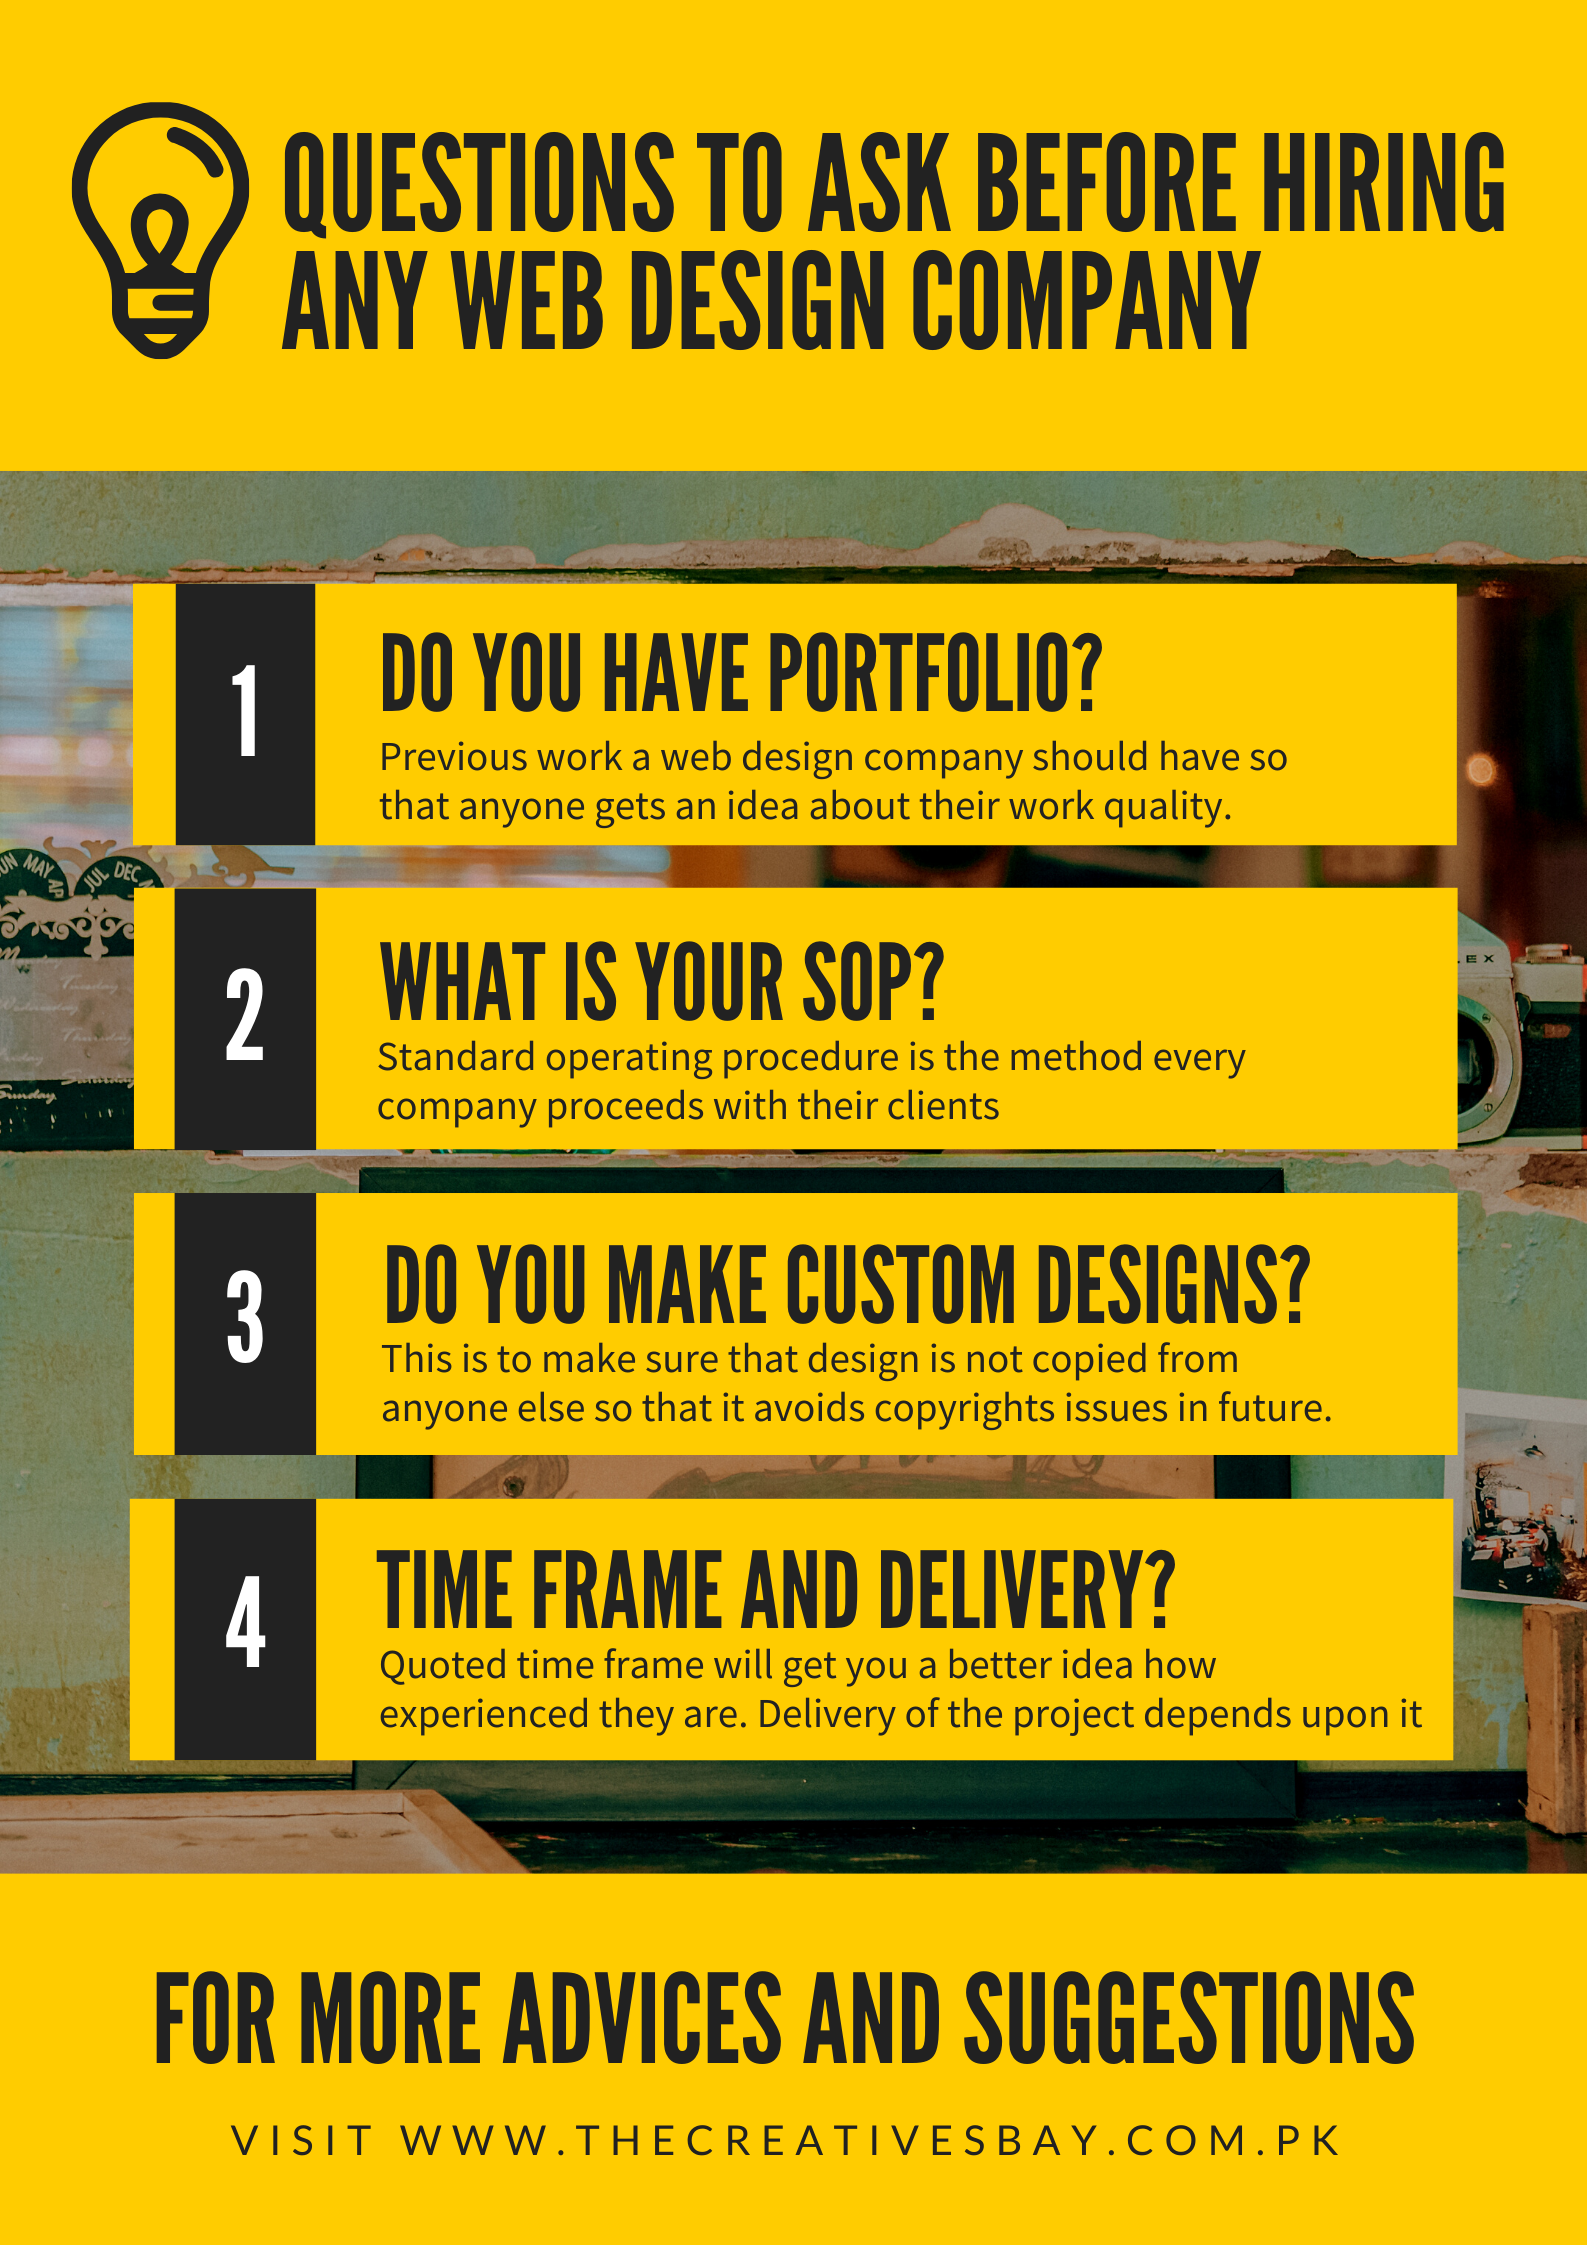 Questions To Ask Before Hiring Any Web Design Company